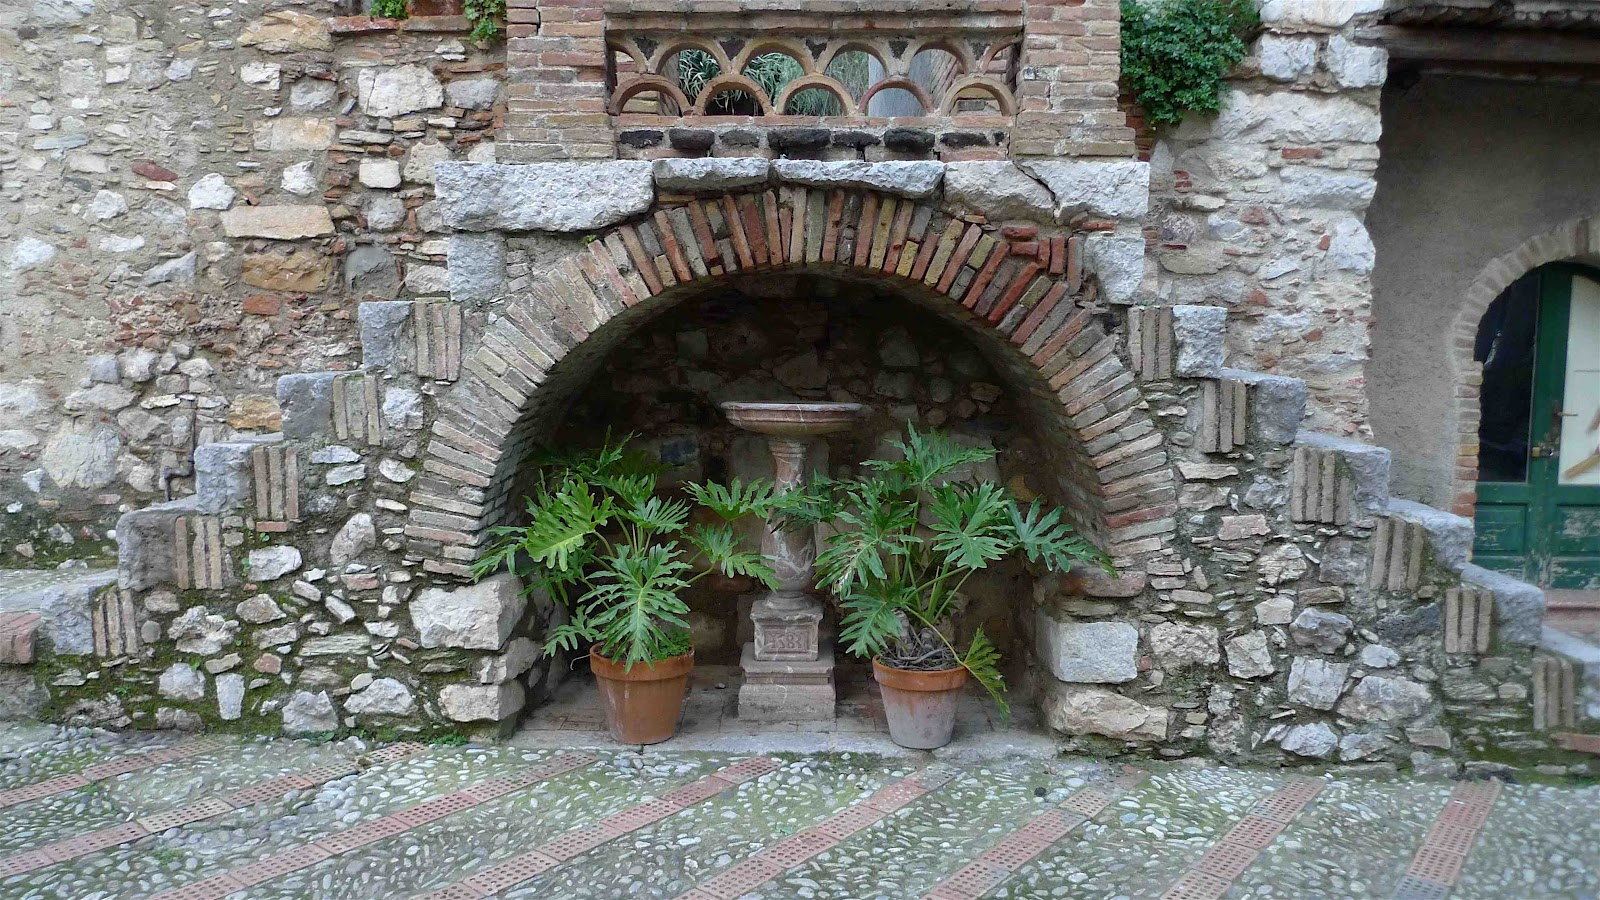 Jeffrey Bales World of Gardens The Gardens of Southern Italy